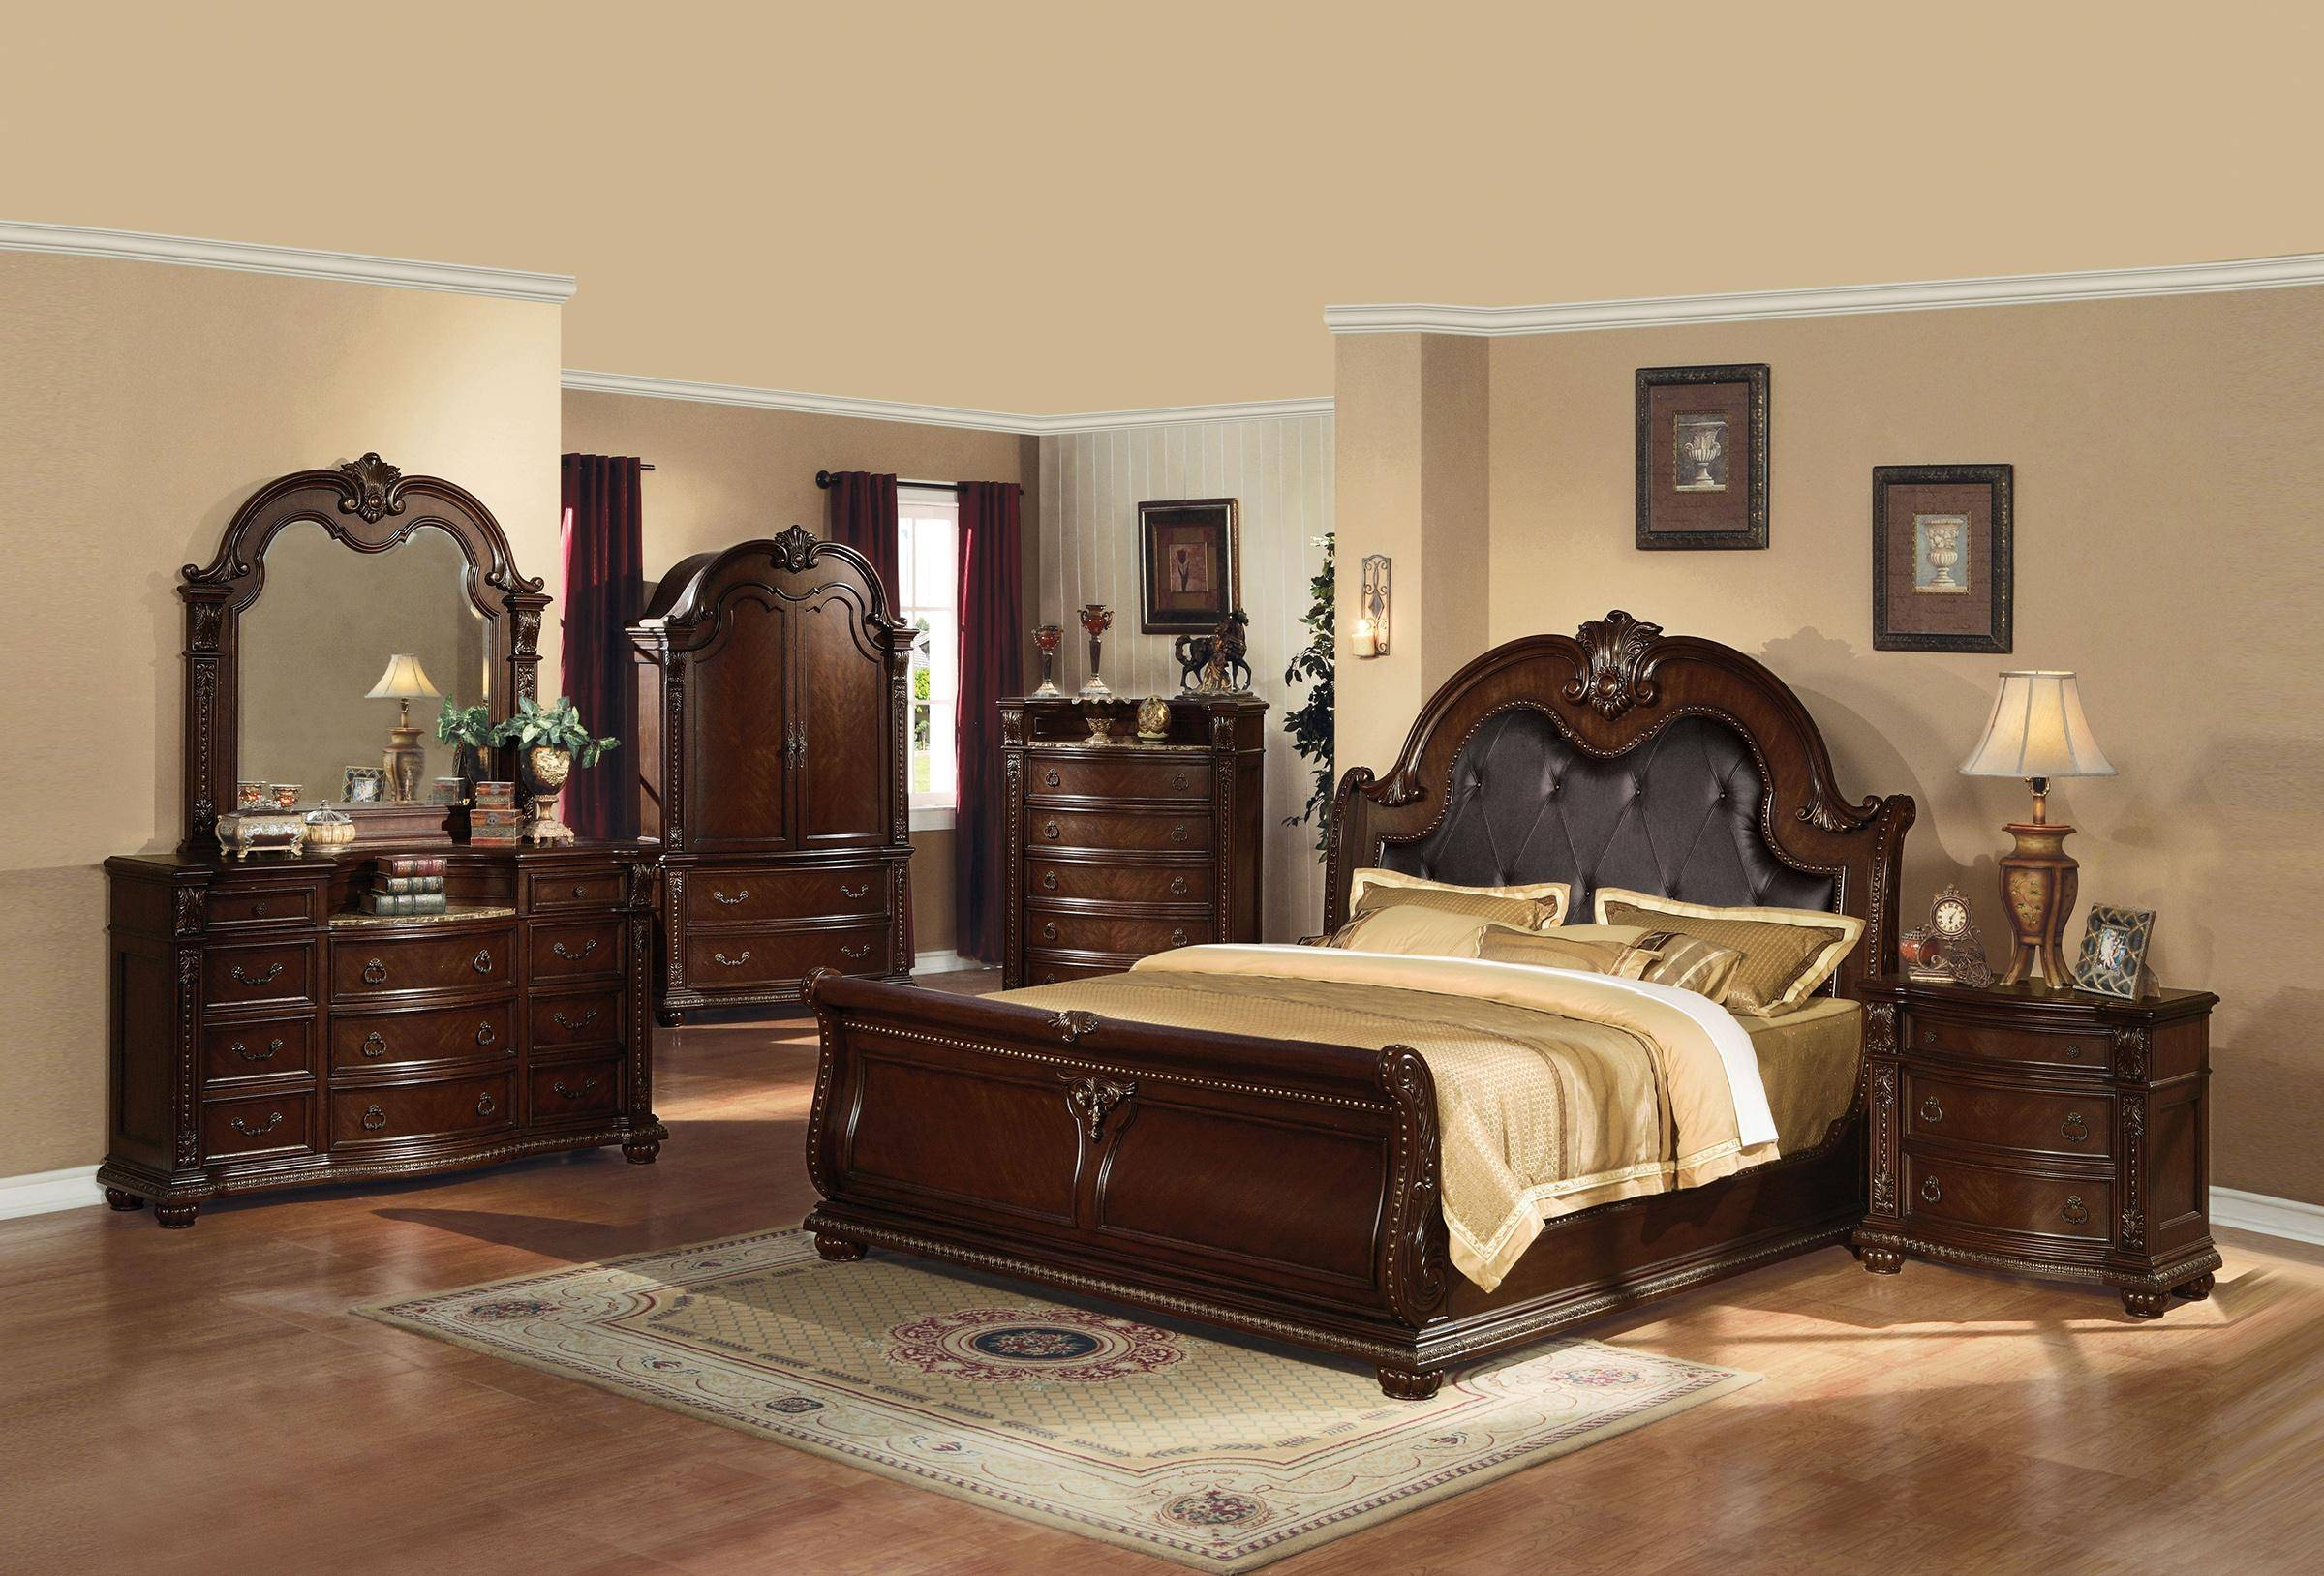 Find Many Great New Used Options And Get The Best Deals For Sheridan Collection King Size Bed Traditional Cherry Wood Bedroom Furniture At